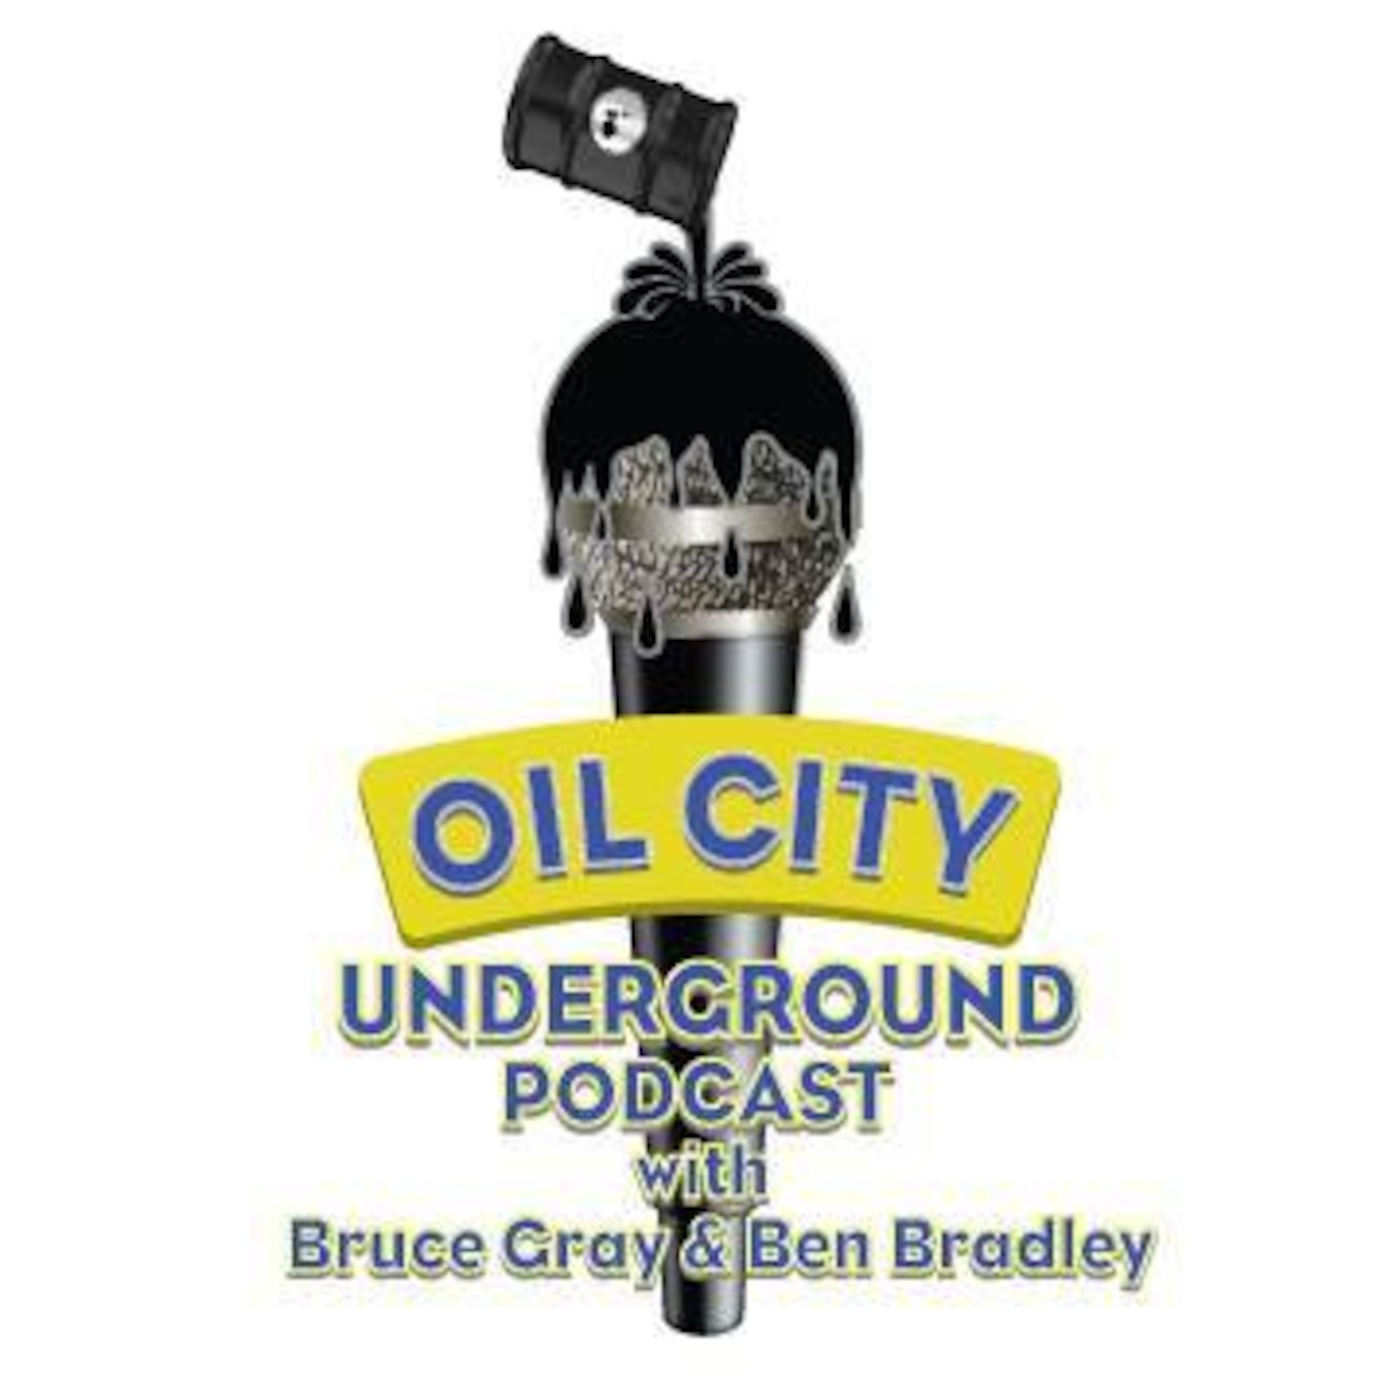 Oil City Underground